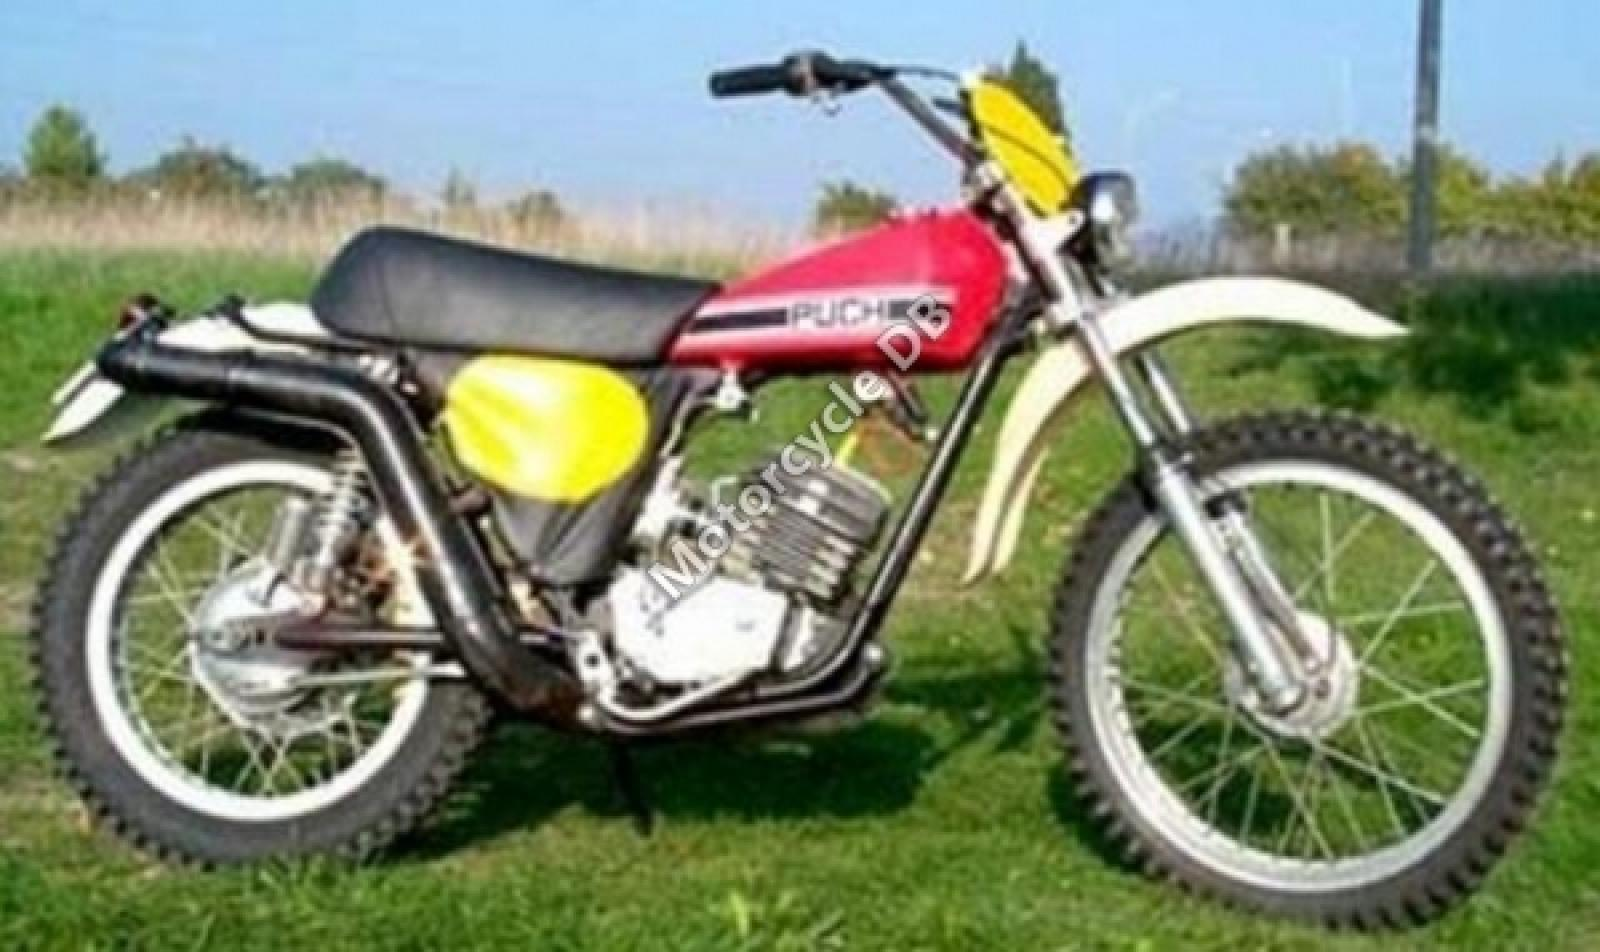 Puch GS 350 F 5 1985 images #121610